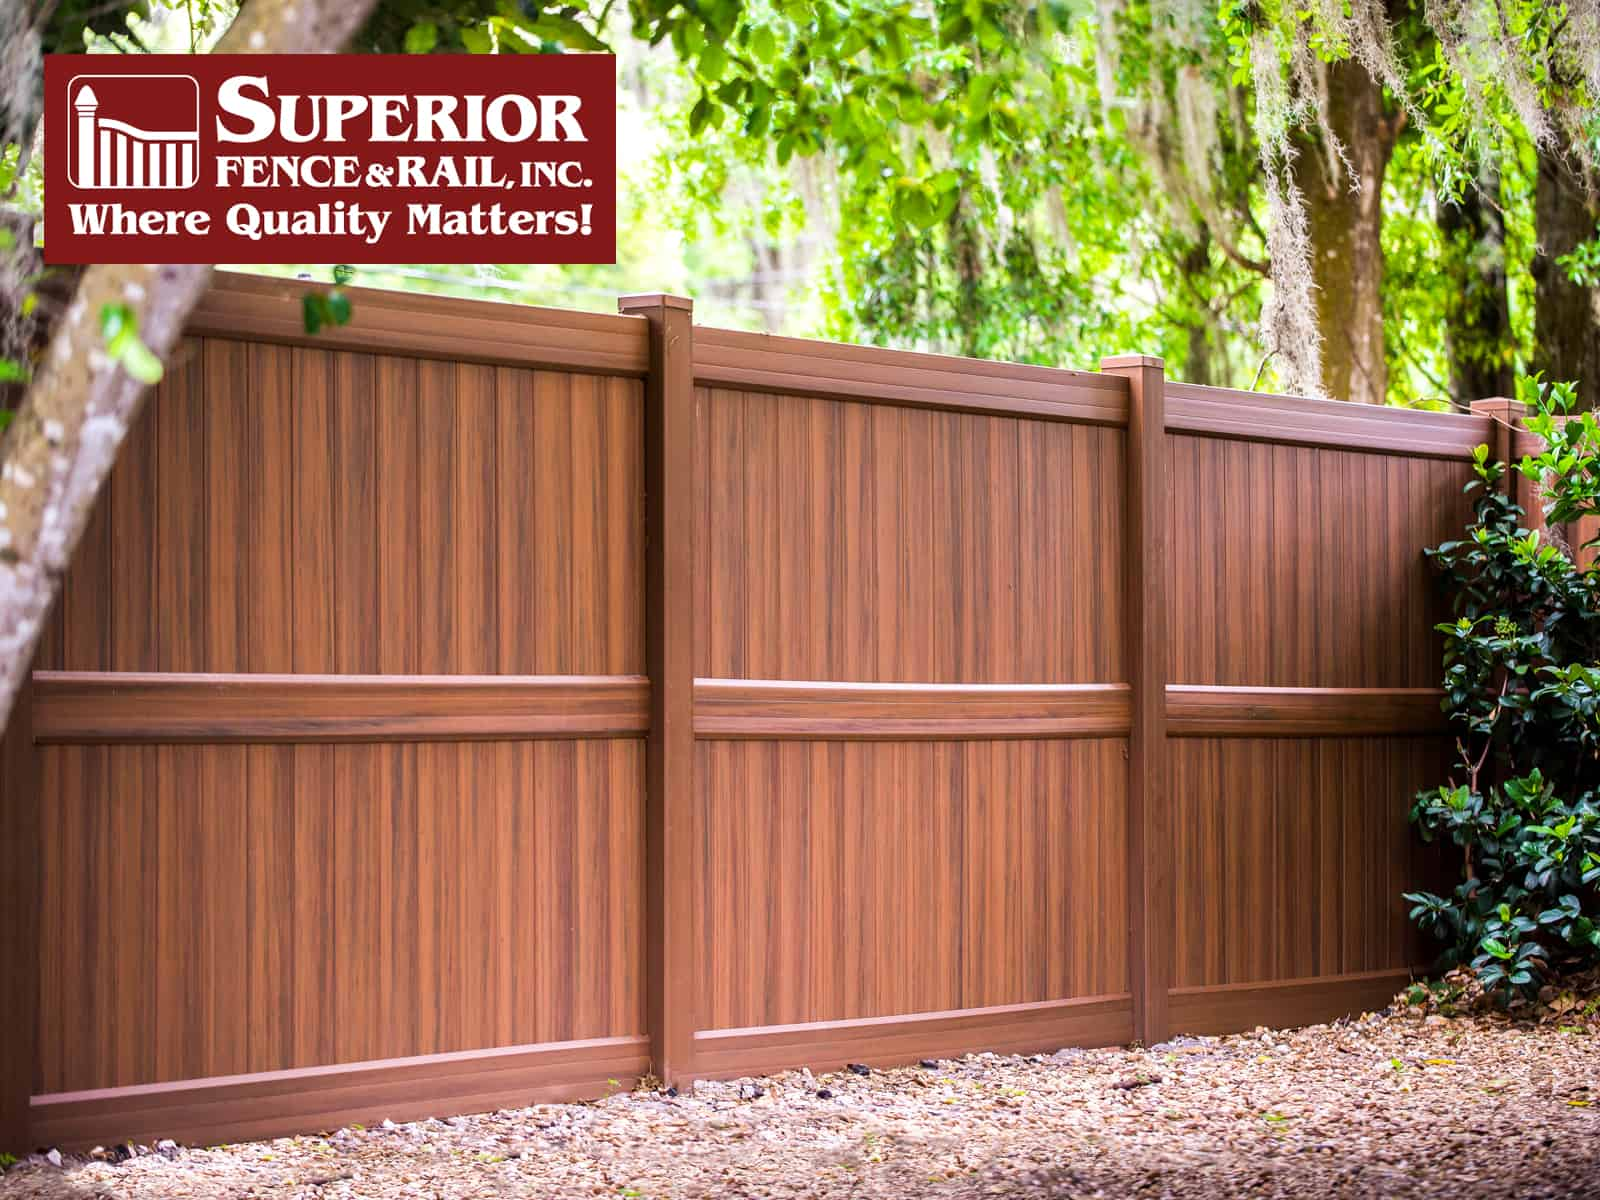 Leon County Fence Company Contractor